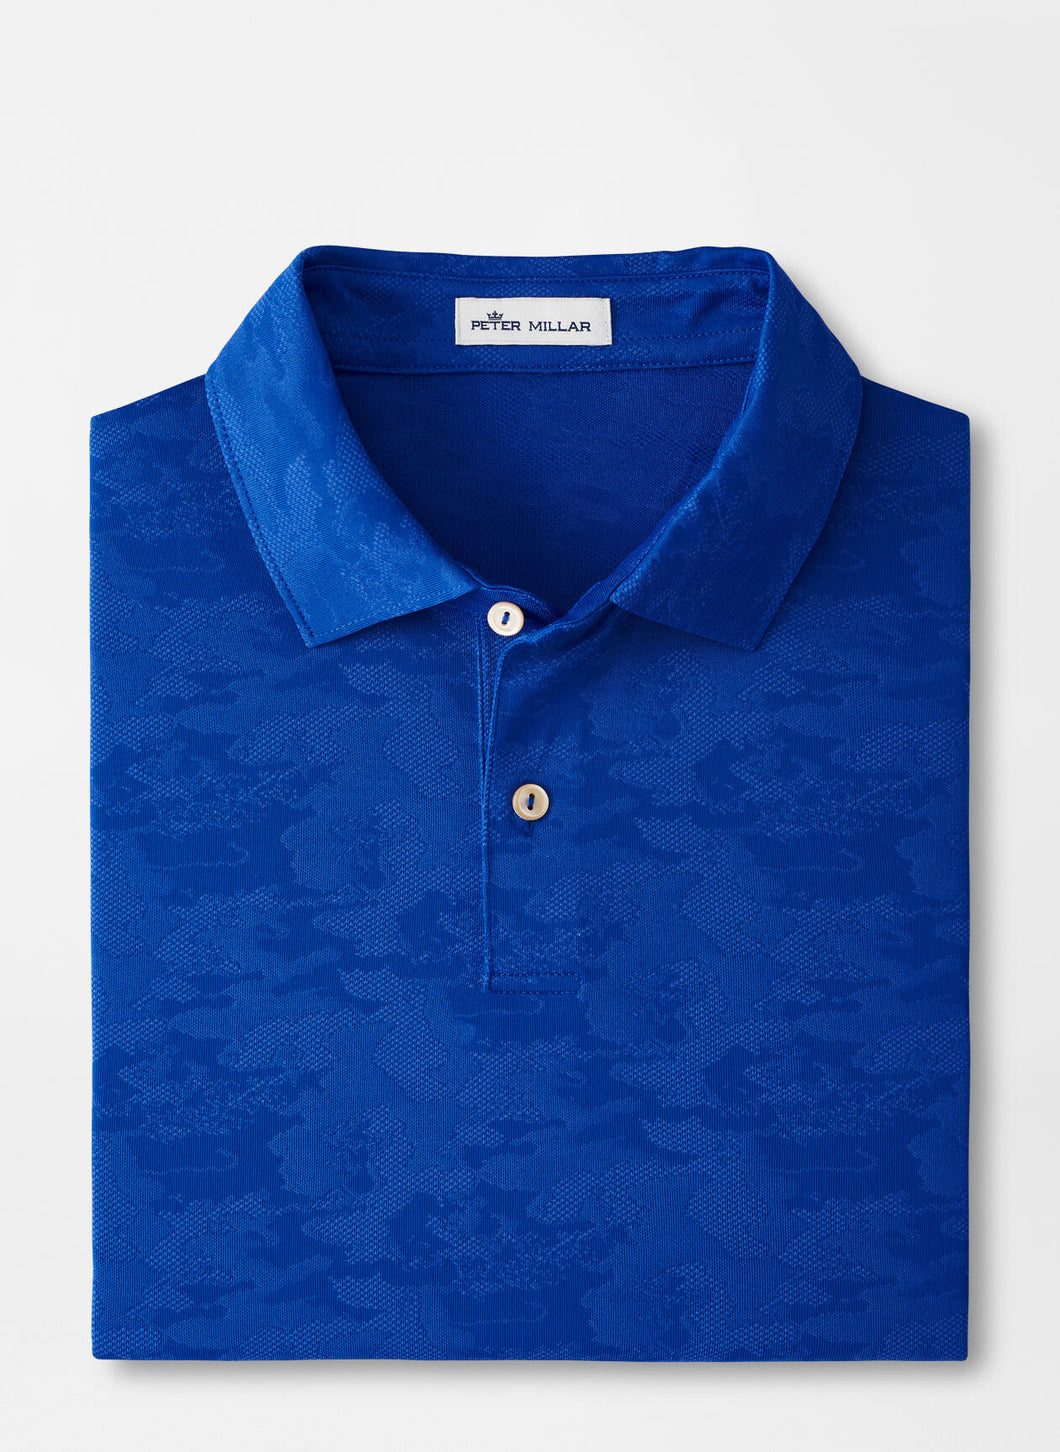 Peter Millar Carl Distressed Camo Performance Jacquard Polo in Deep Ocean